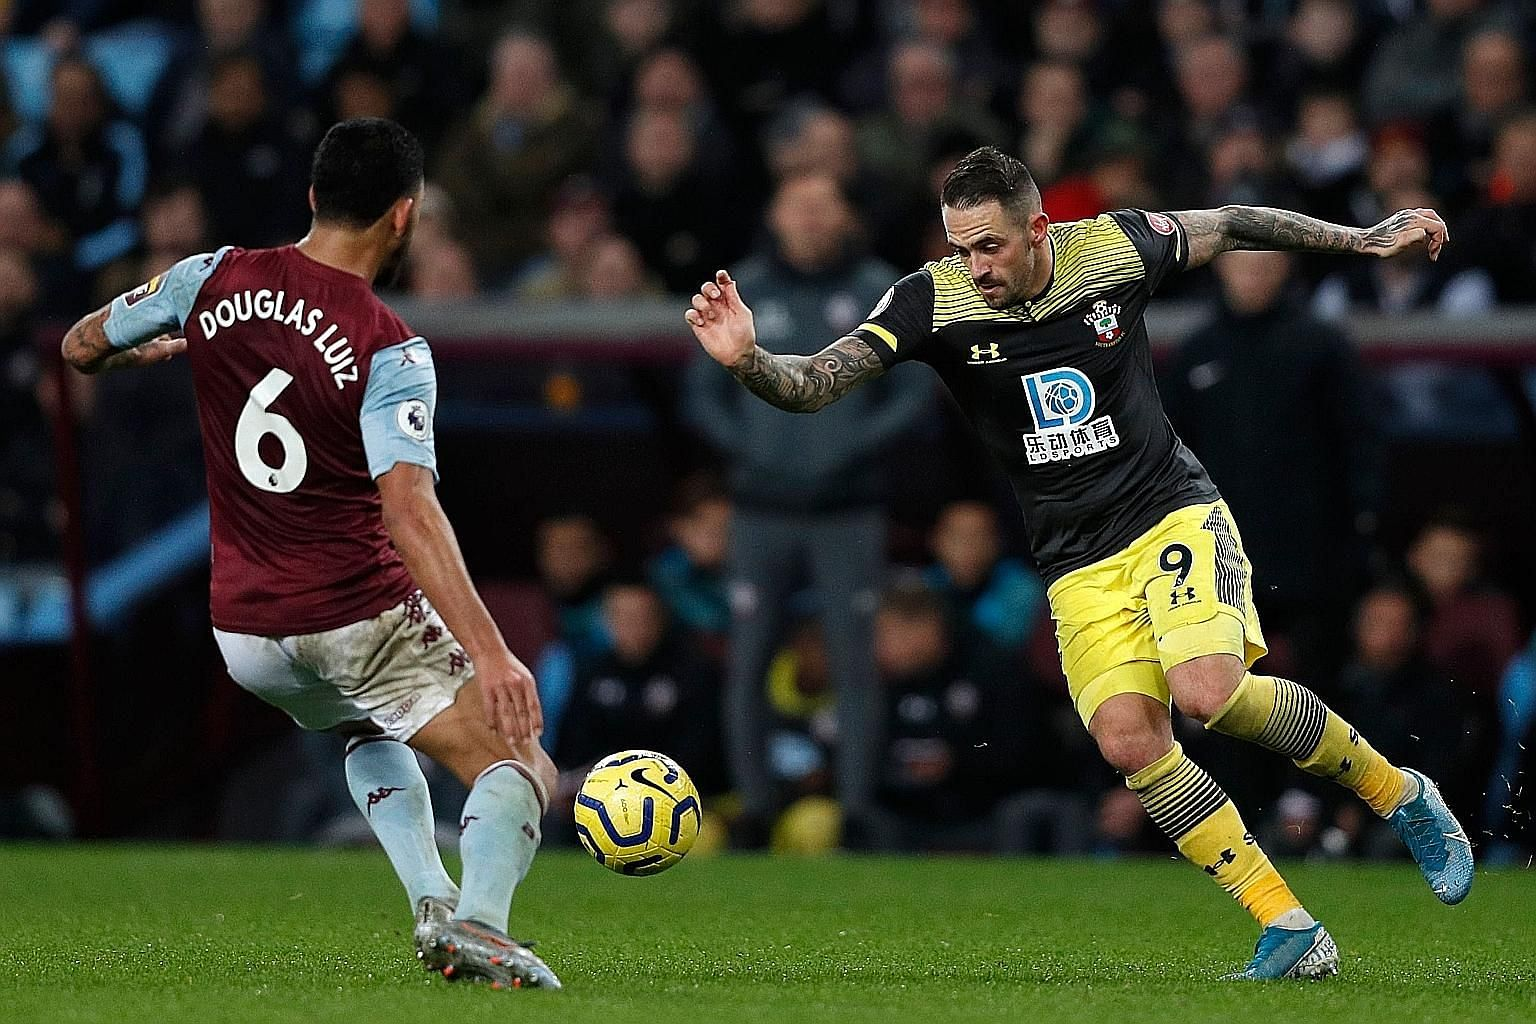 Southampton's Danny Ings is the joint-second top scorer in the Premier League with 11 goals. PHOTO: AGENCE FRANCE-PRESSE